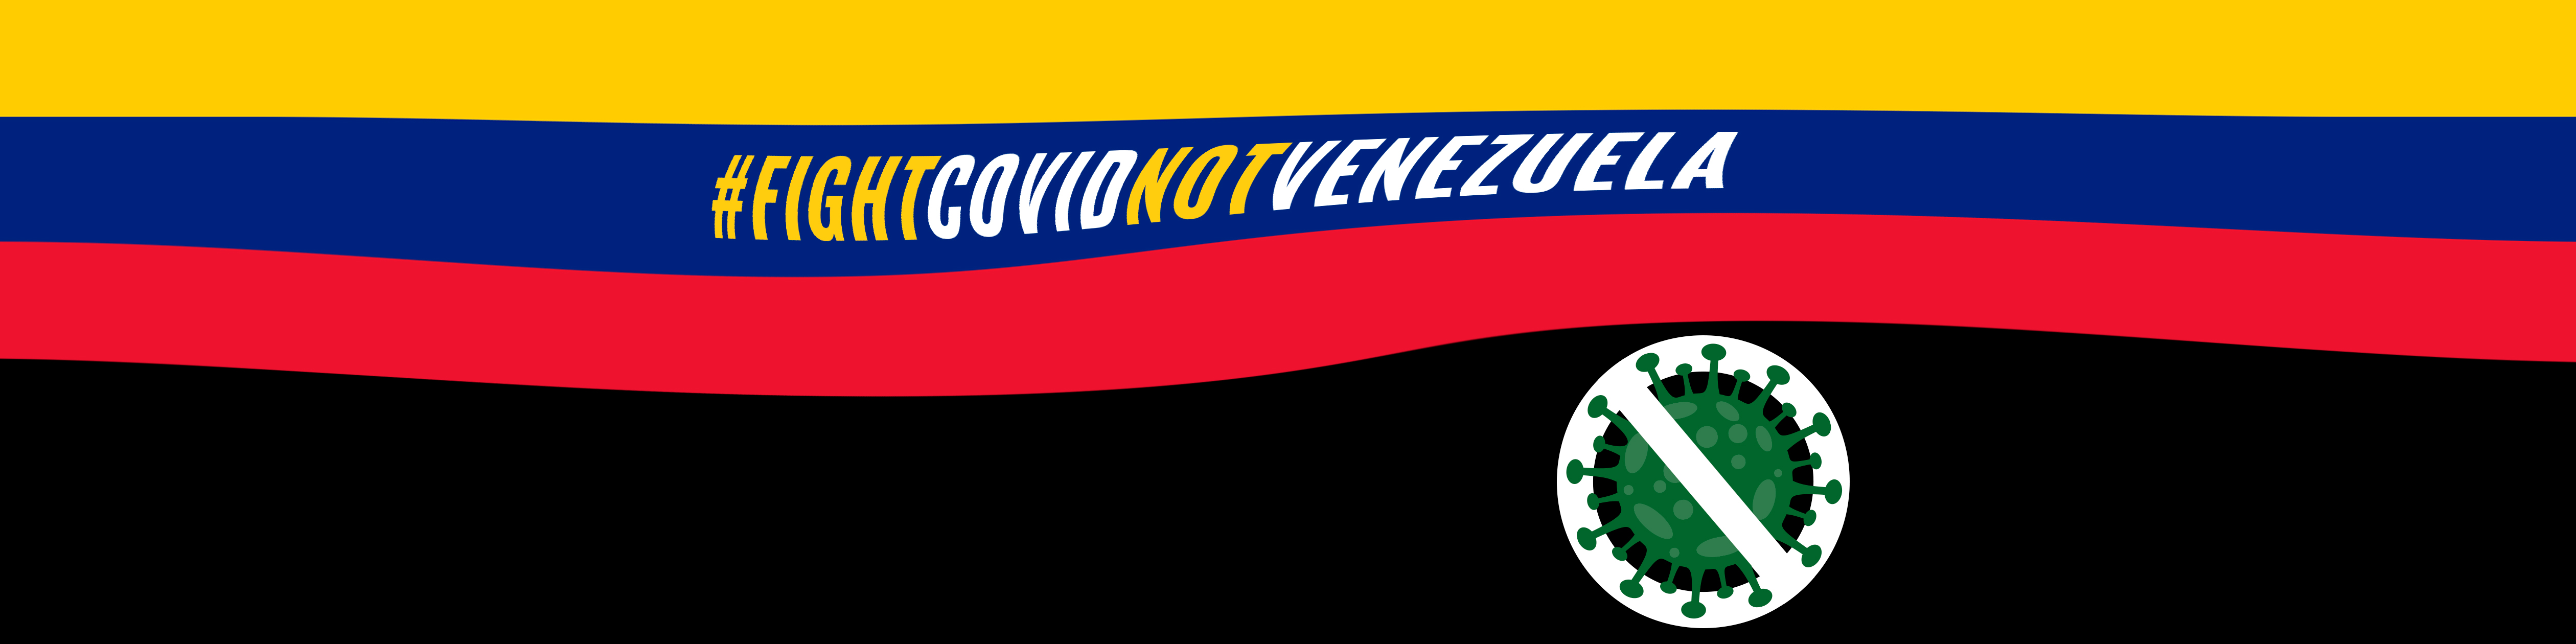 FIGHT COVID NOT VENEZUELA